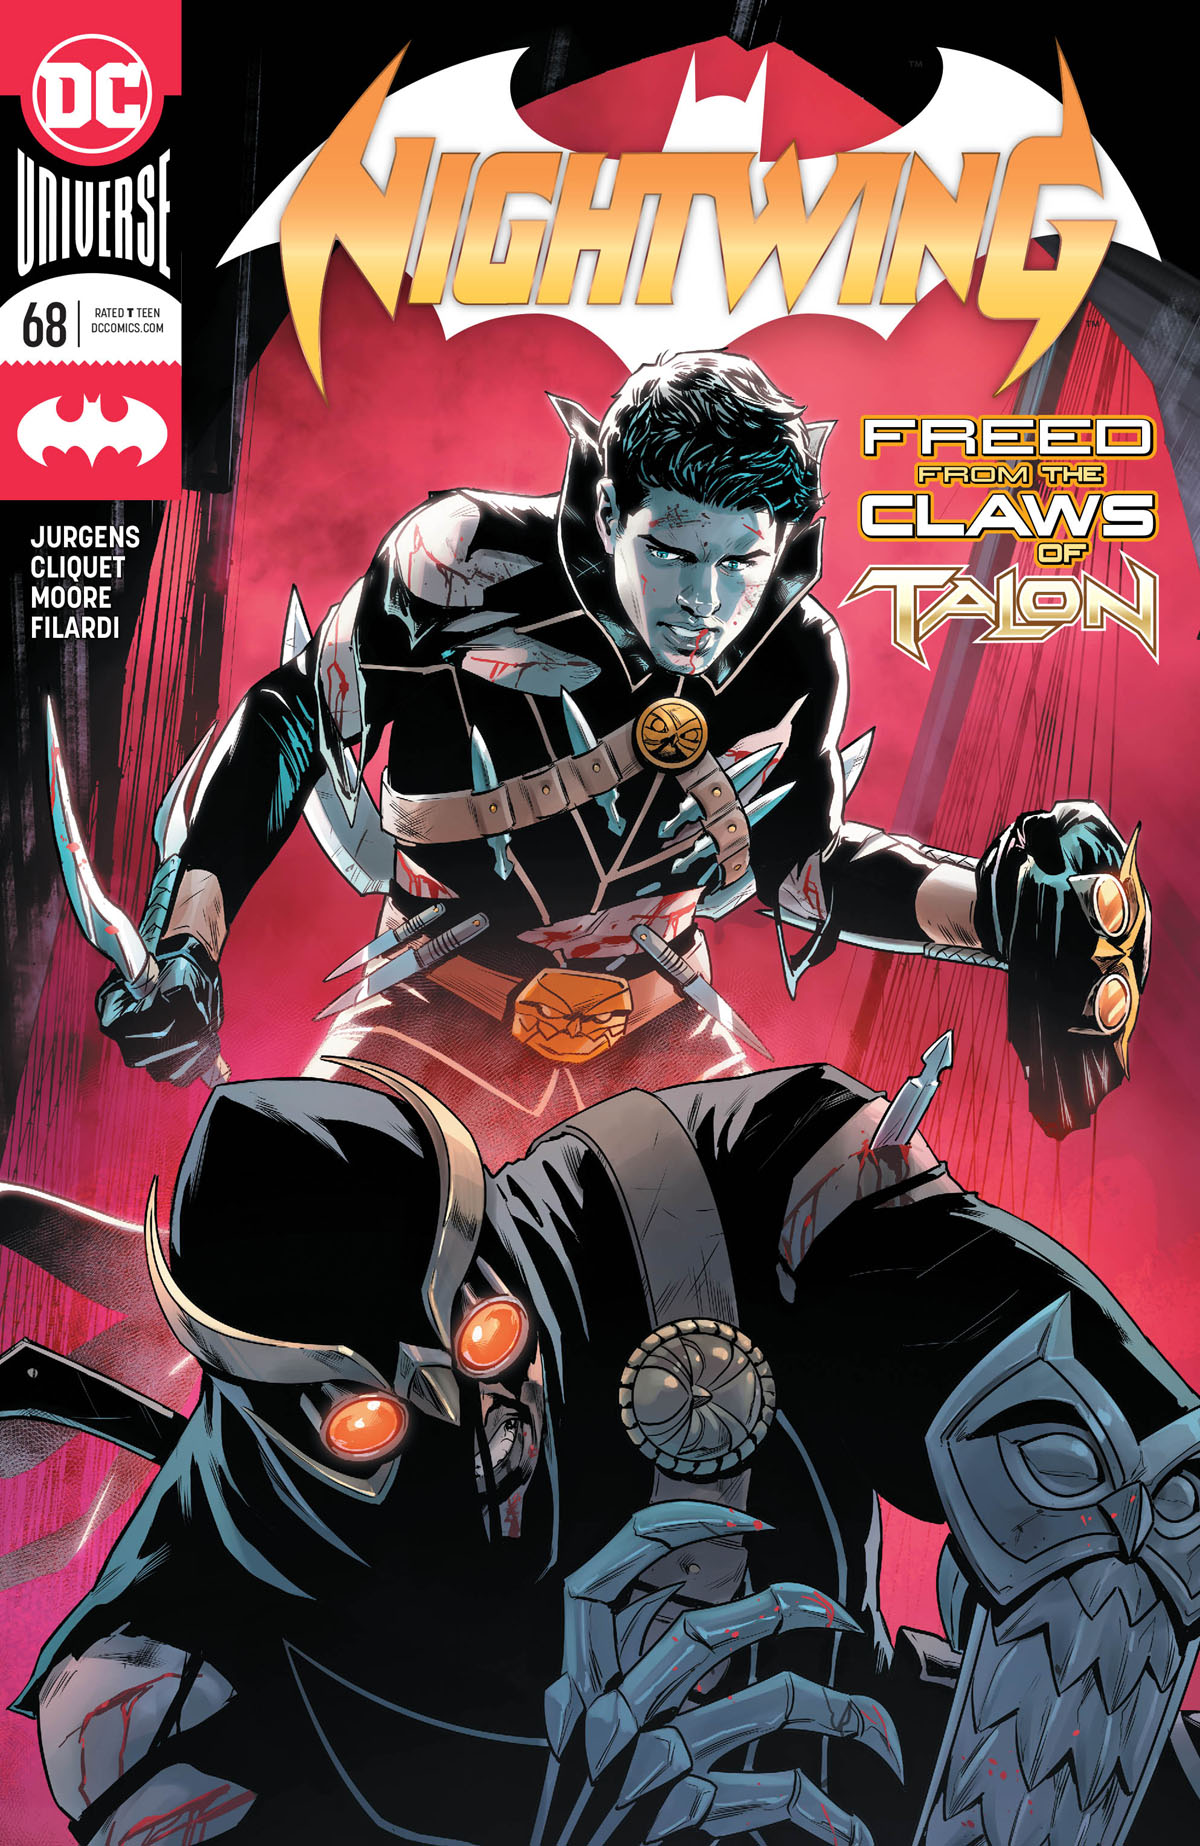 Nightwing #68 cover